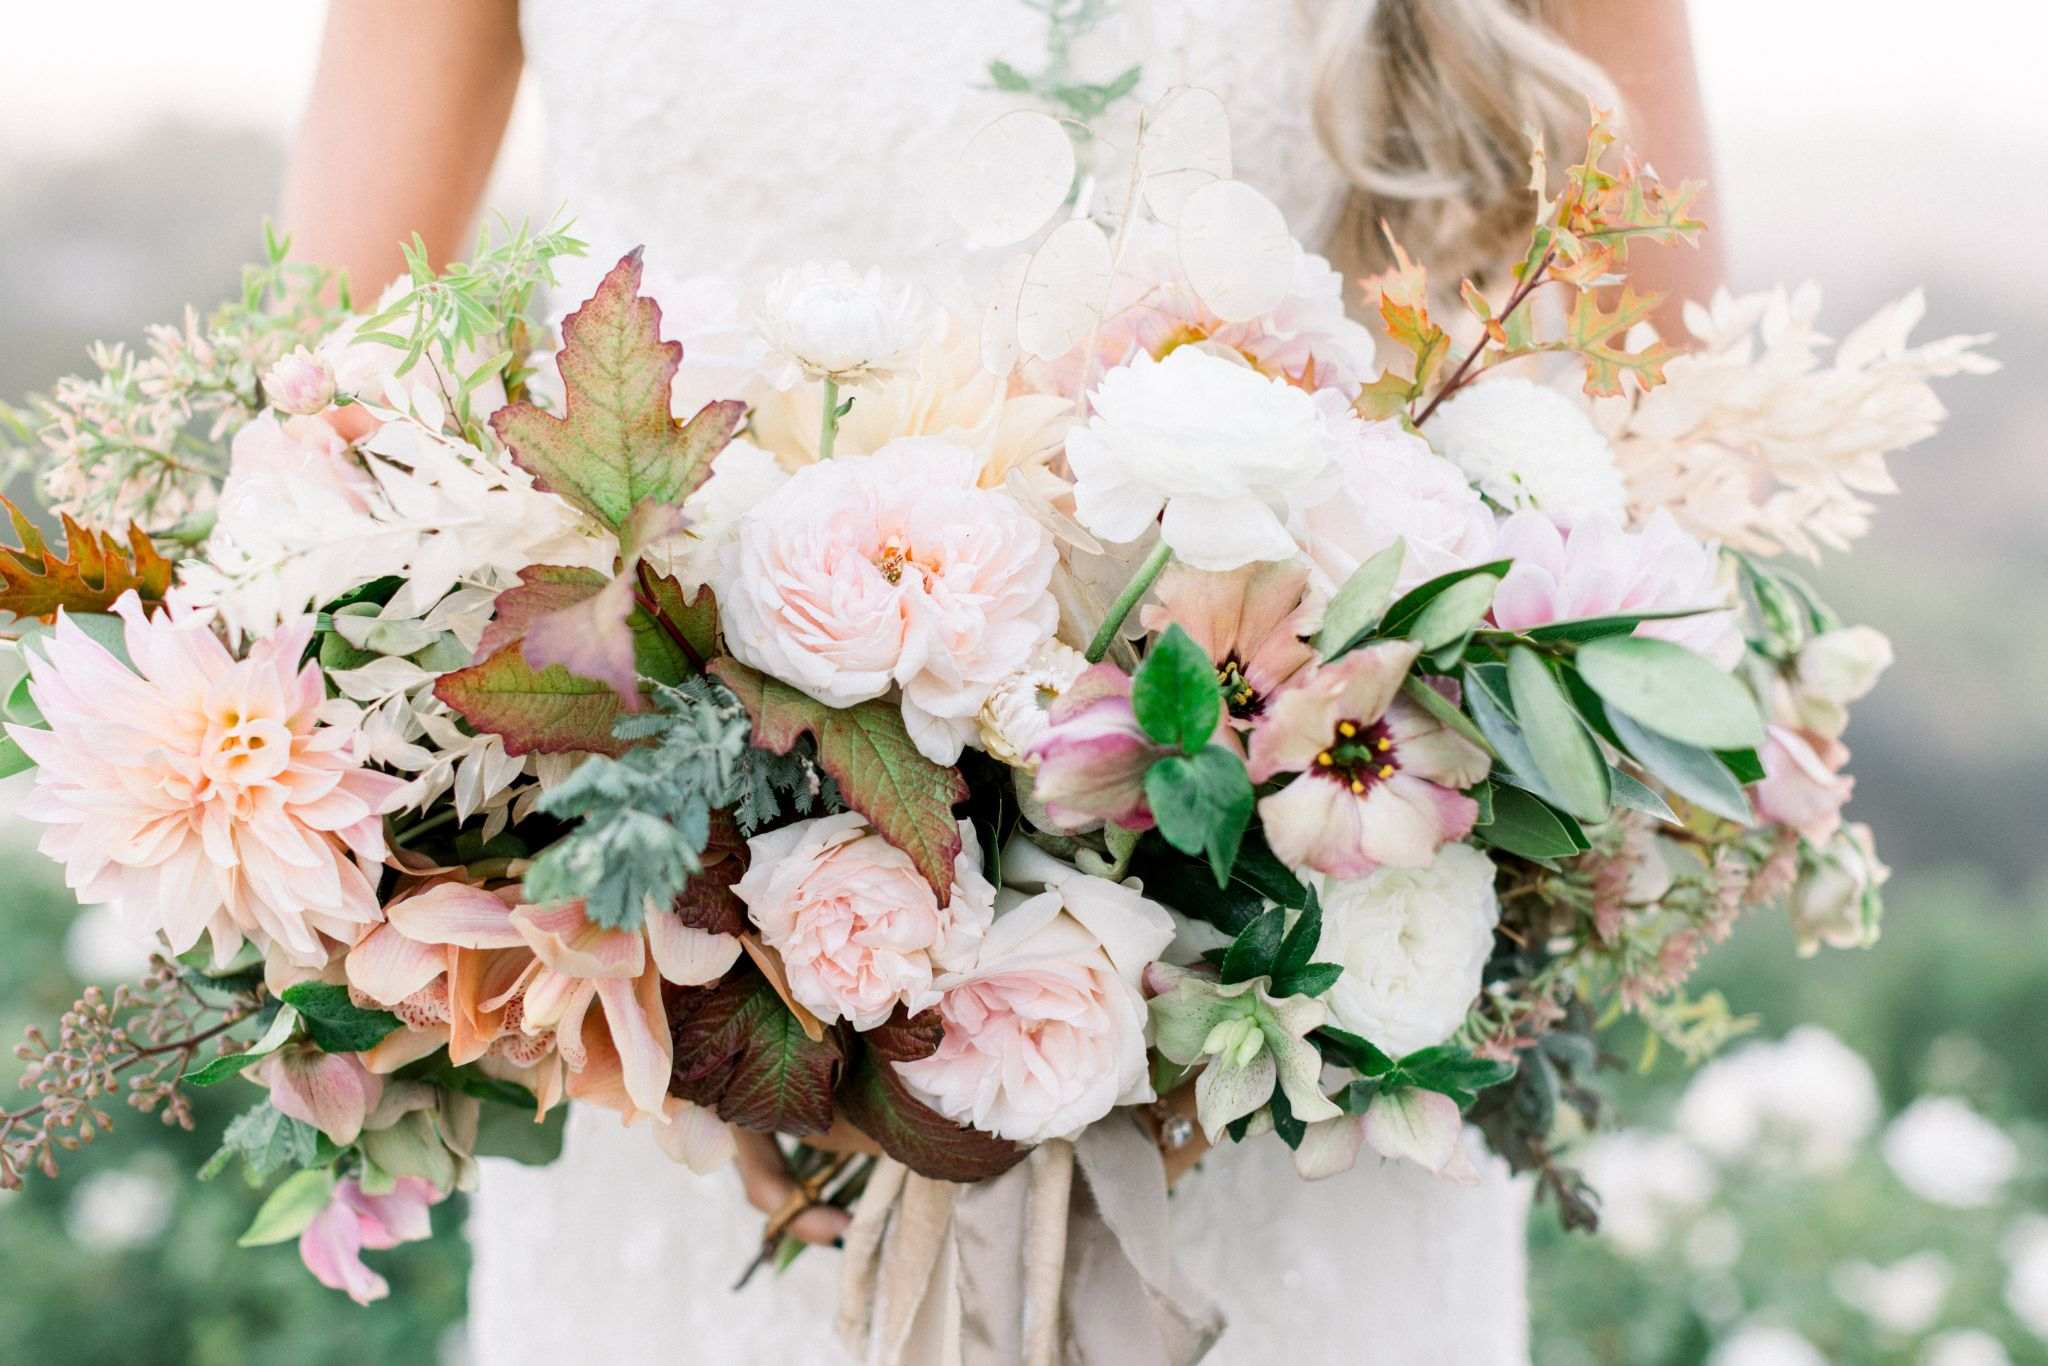 How to Choose Wedding Flowers for the Right Season?